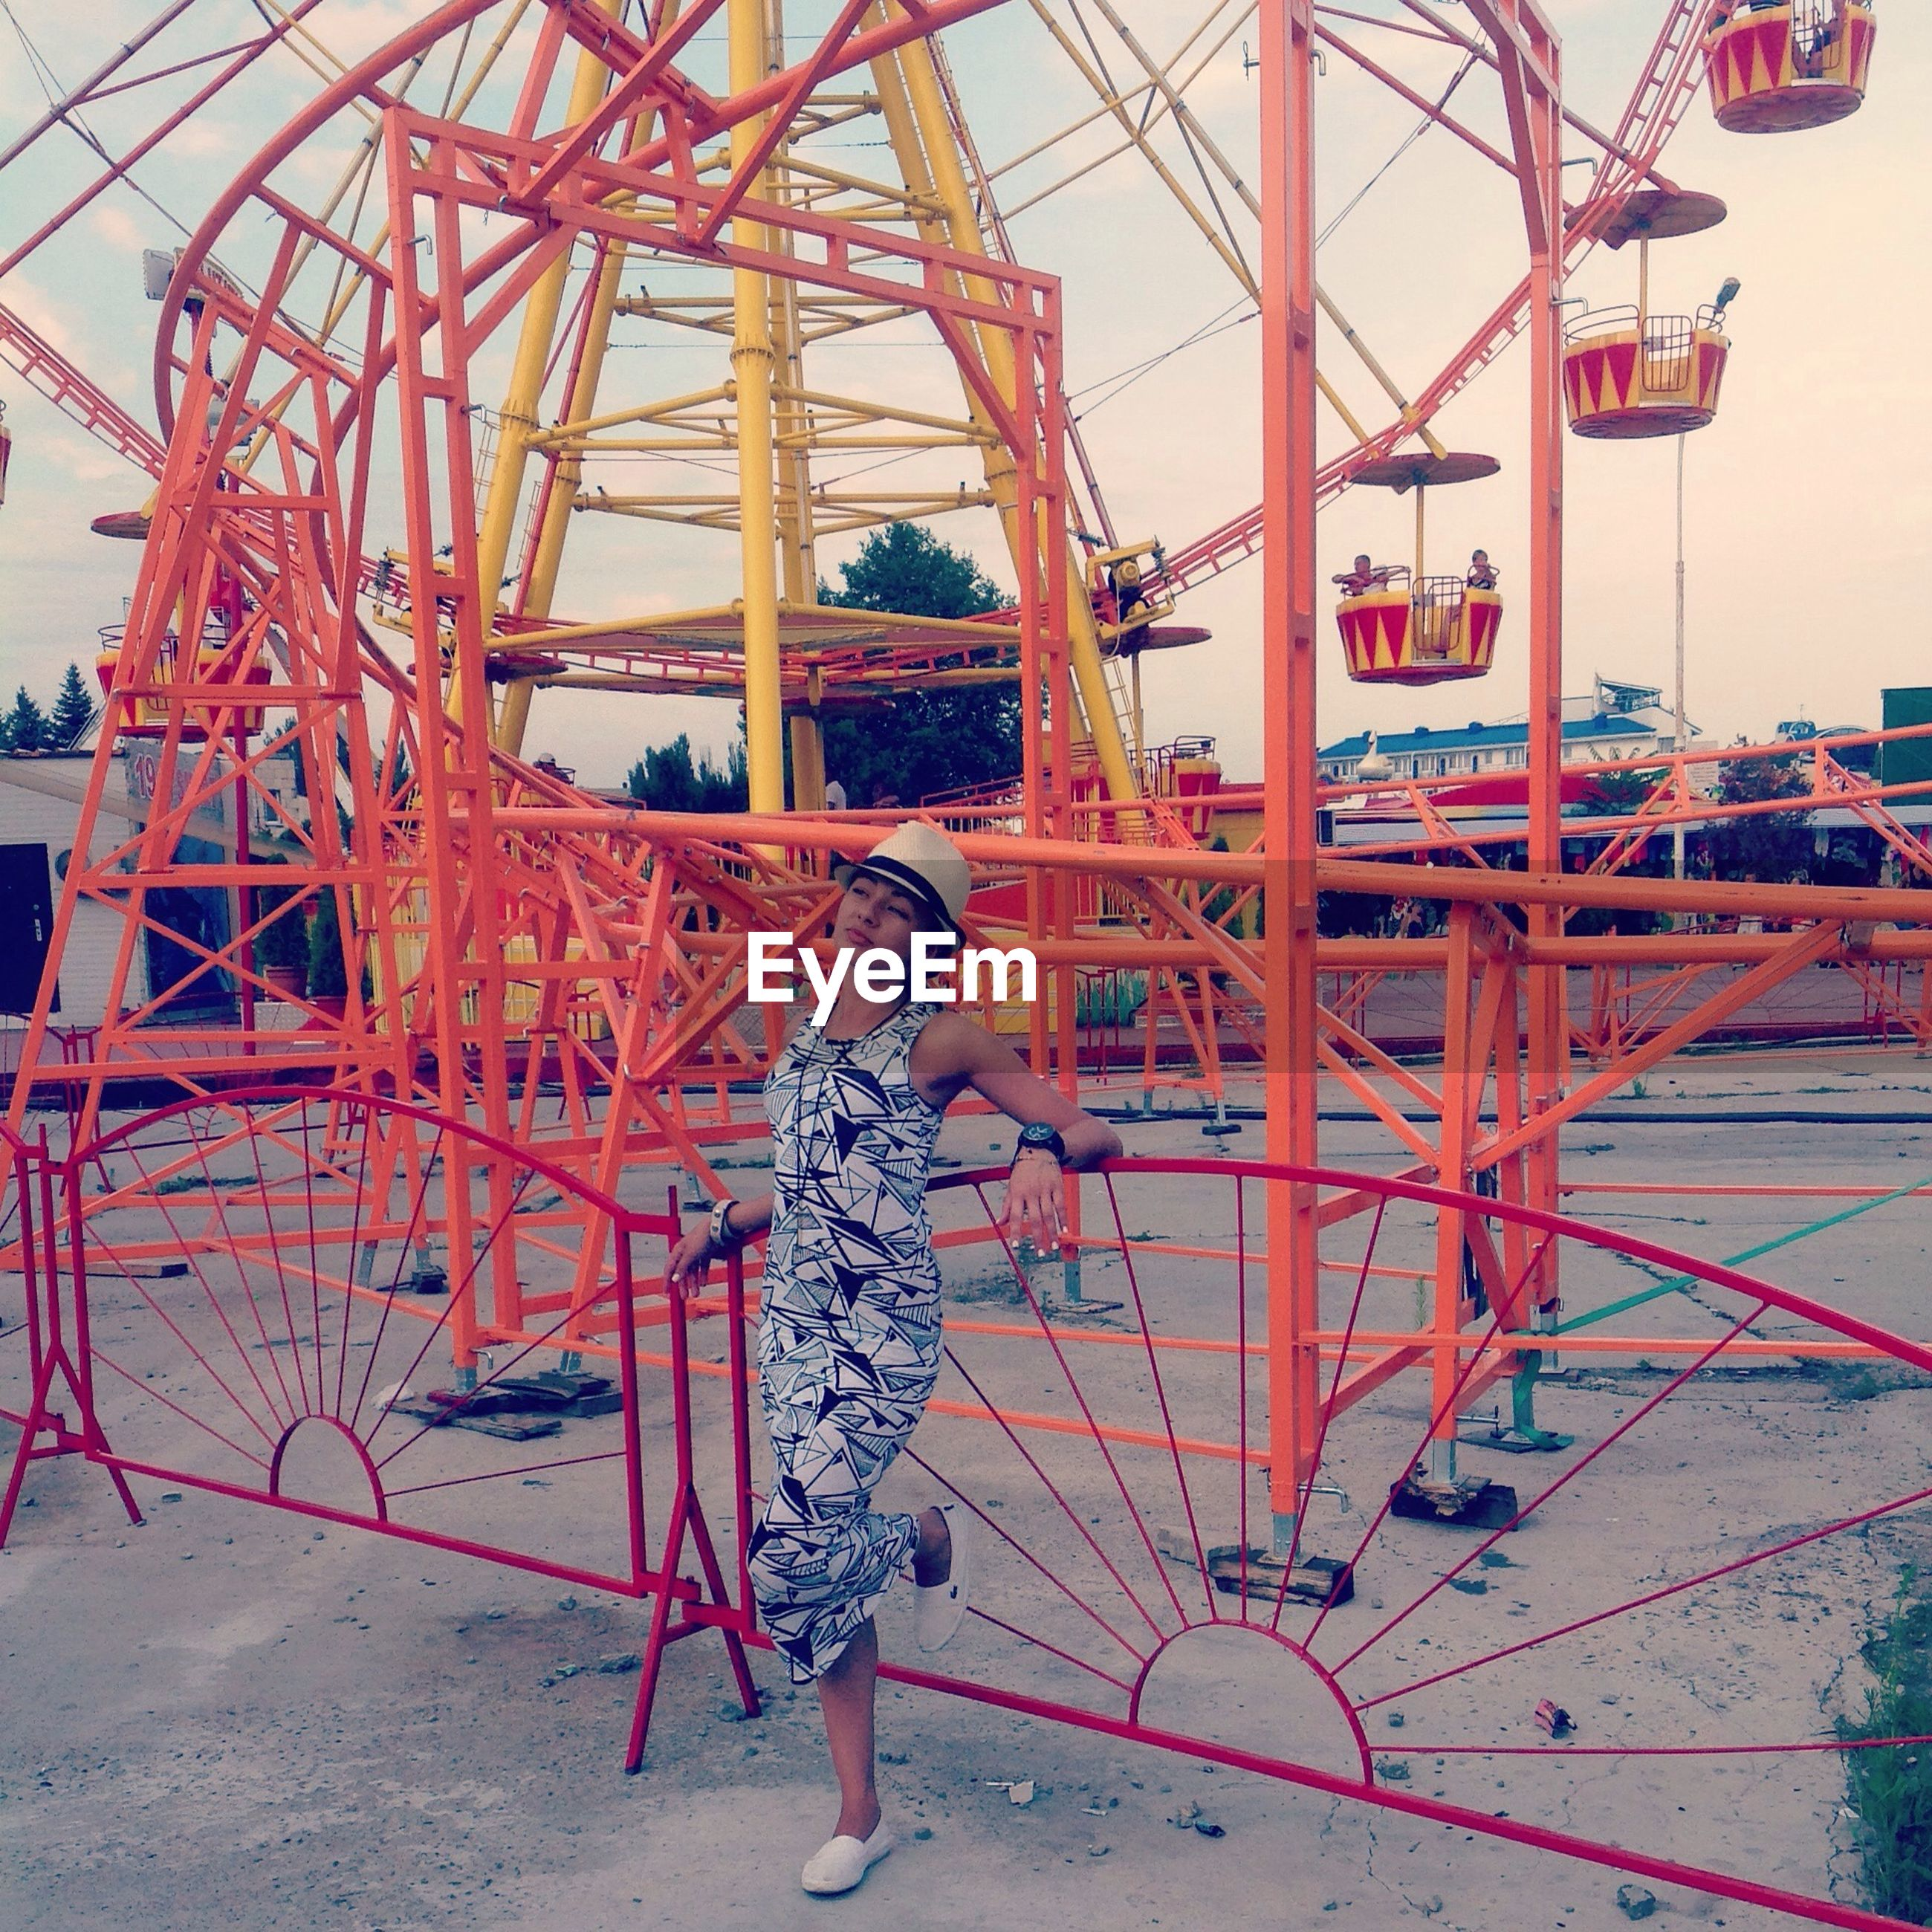 metal, transportation, amusement park, amusement park ride, metallic, built structure, low angle view, mode of transport, arts culture and entertainment, architecture, ferris wheel, red, travel, construction site, sky, day, outdoors, engineering, travel destinations, connection